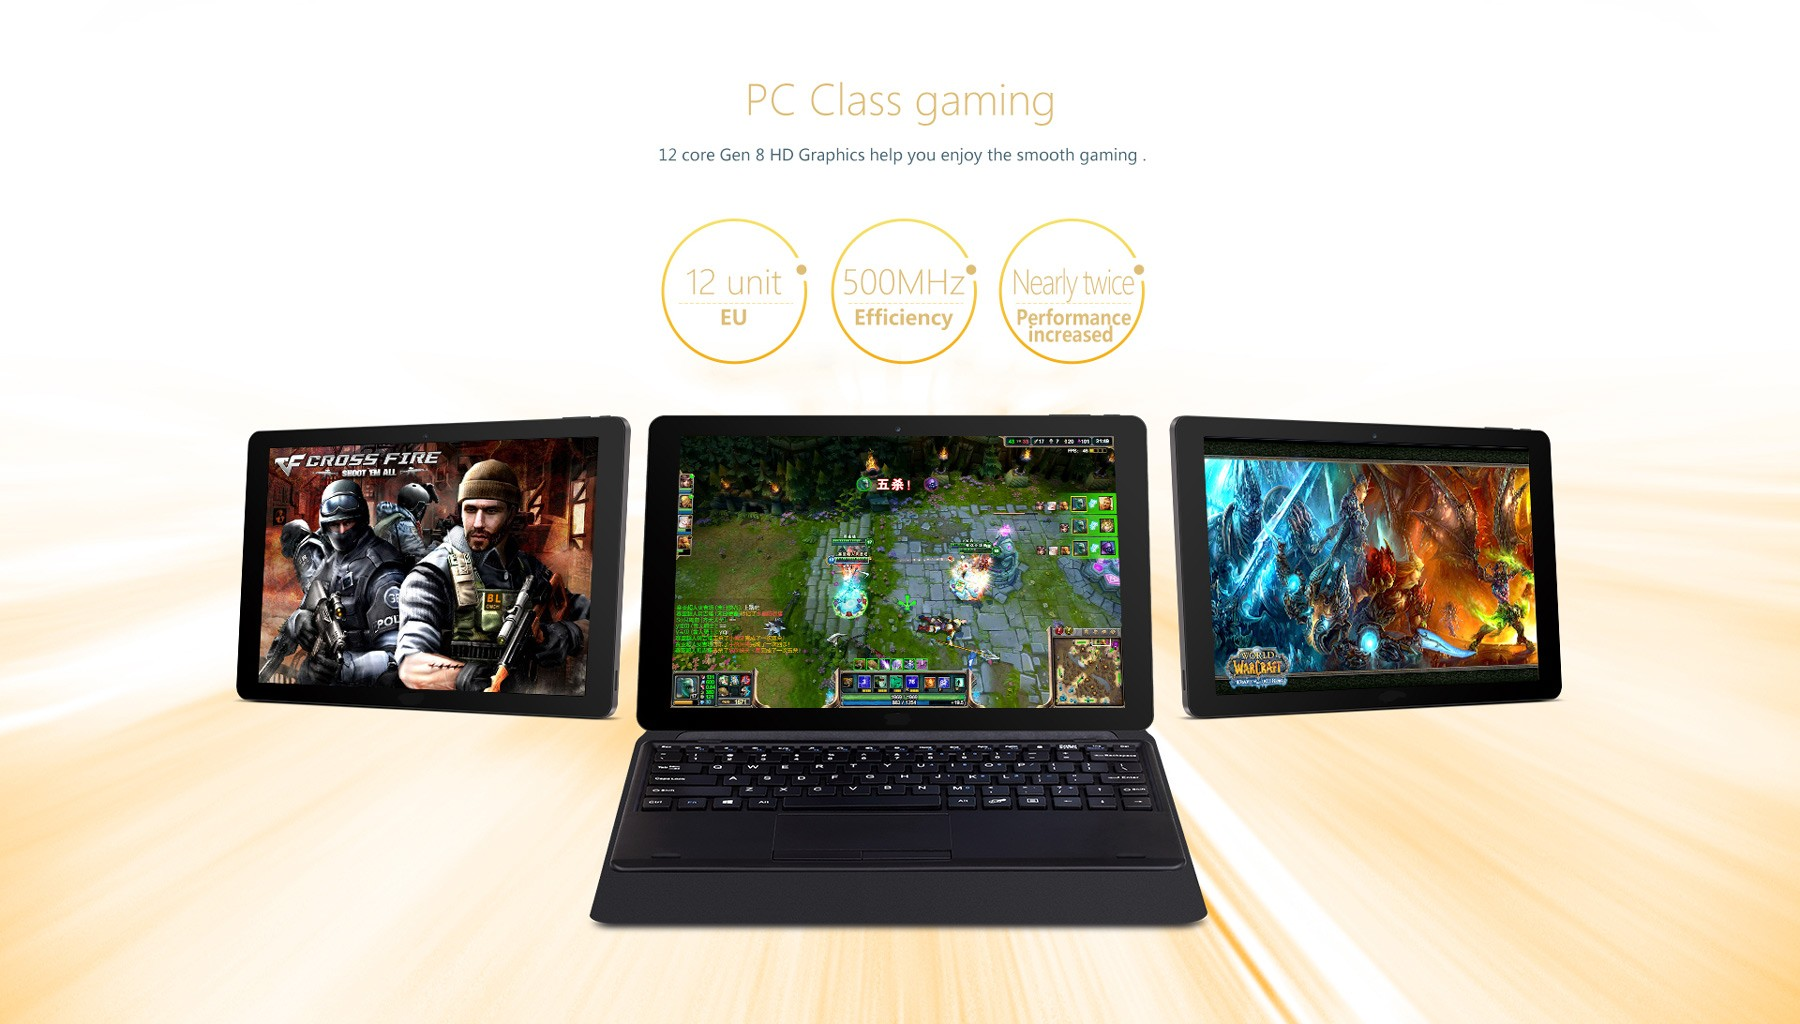 Teclast Tboot 11 gaming